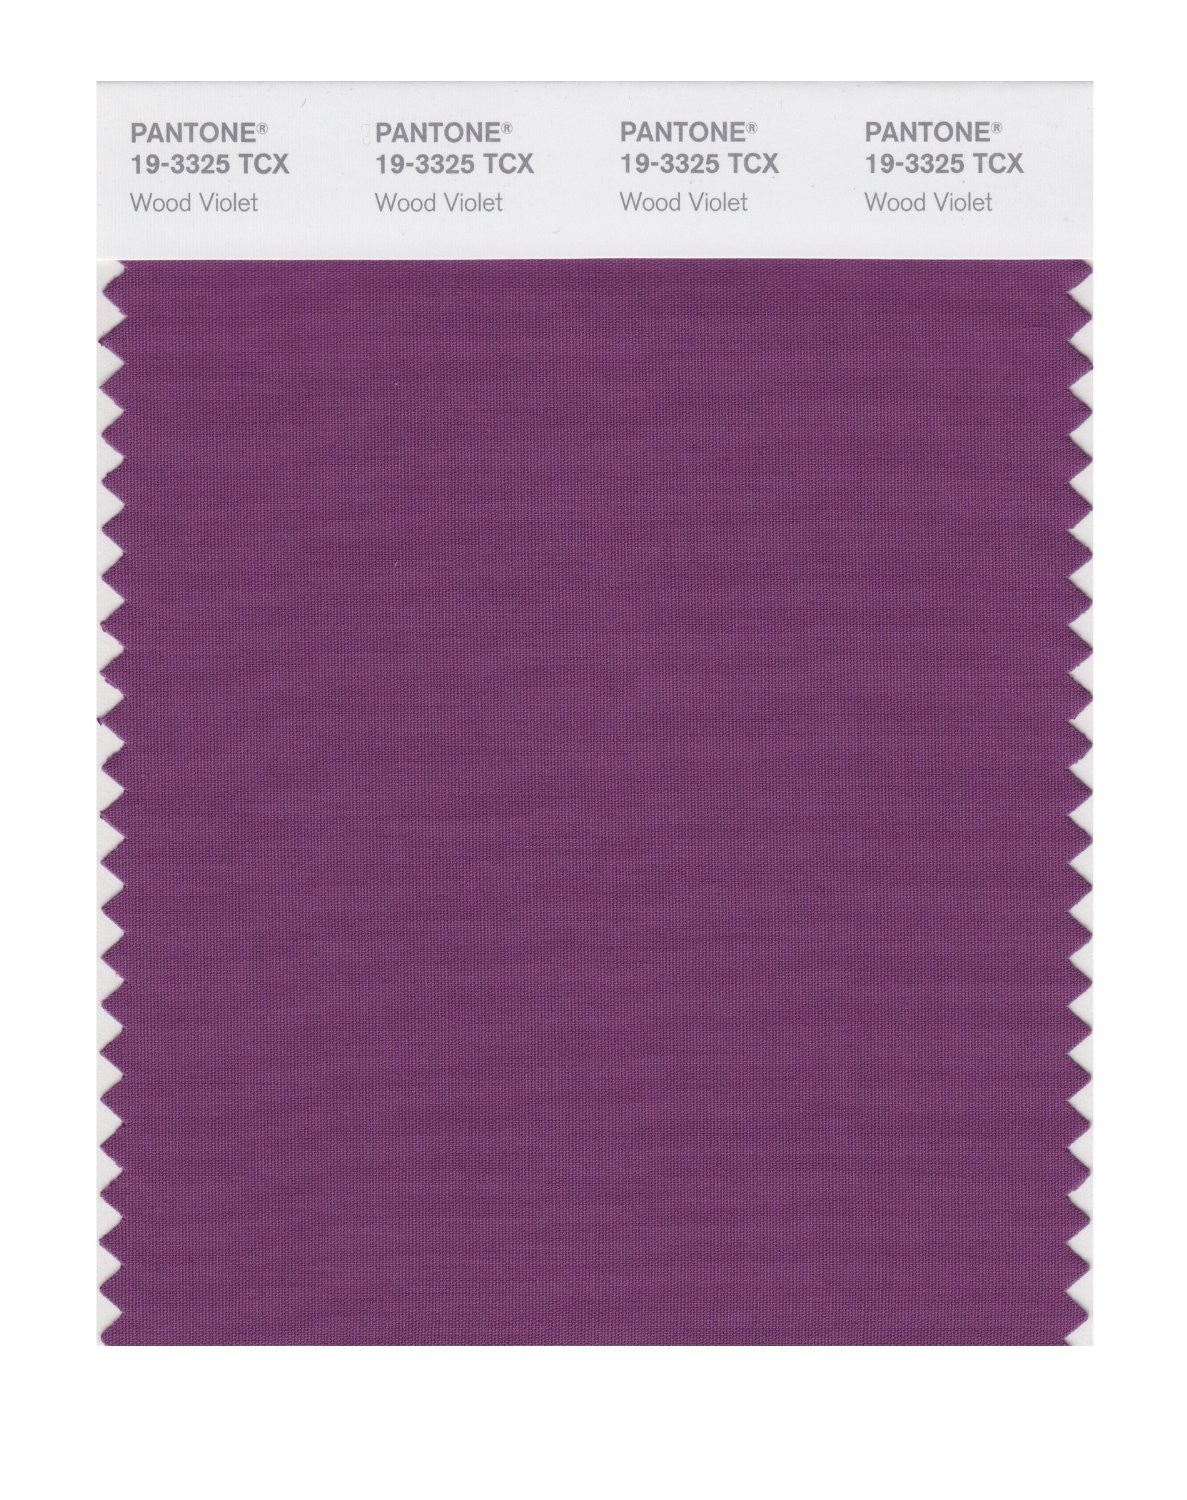 Pantone 19-3325 TCX Swatch Card Wood Violet